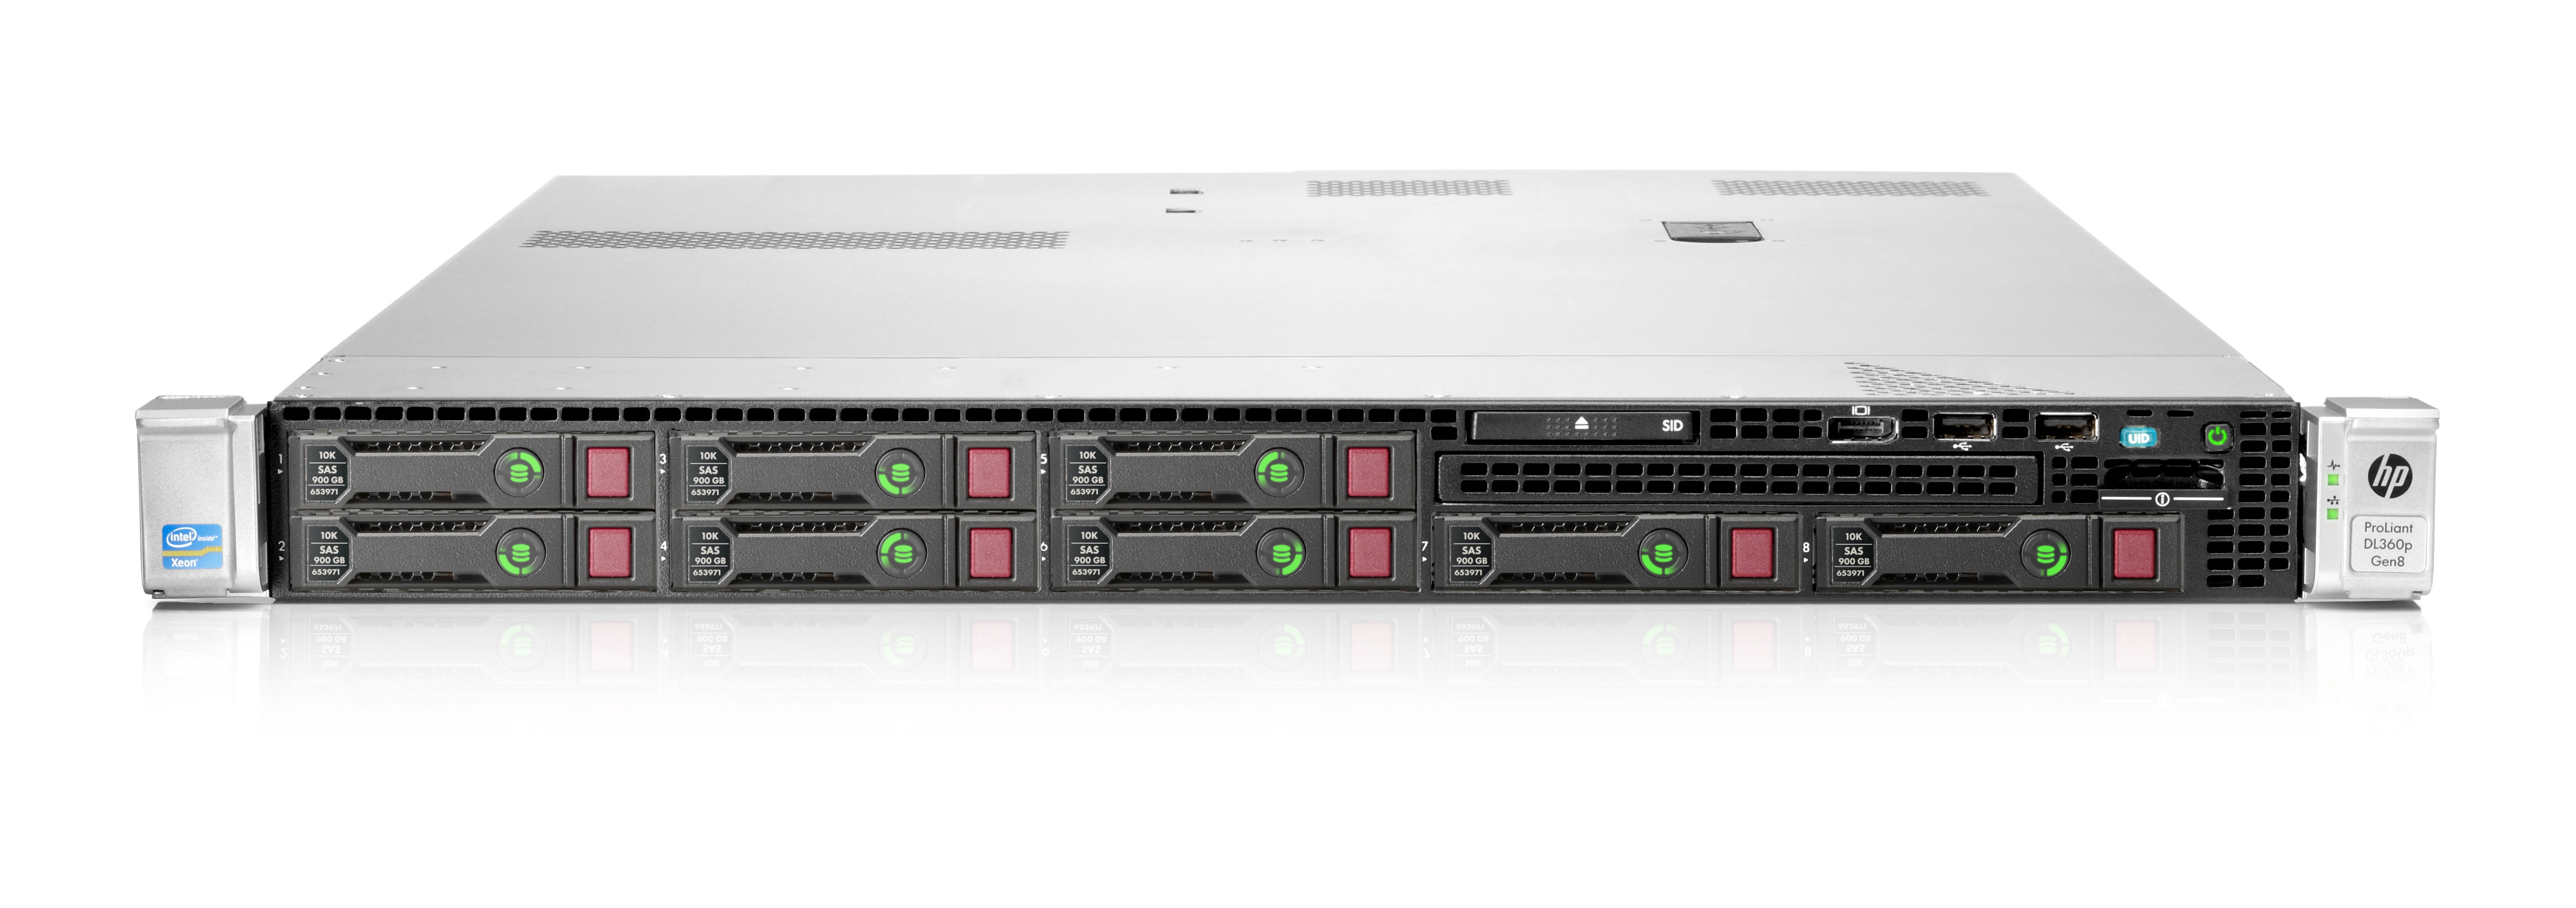 HP ProLiant DL360p Gen8 Server Xeon E5 (2690) 2.9GHz (2P) 32GB-R (noHDD) P420i SFF with 750W Power Supply